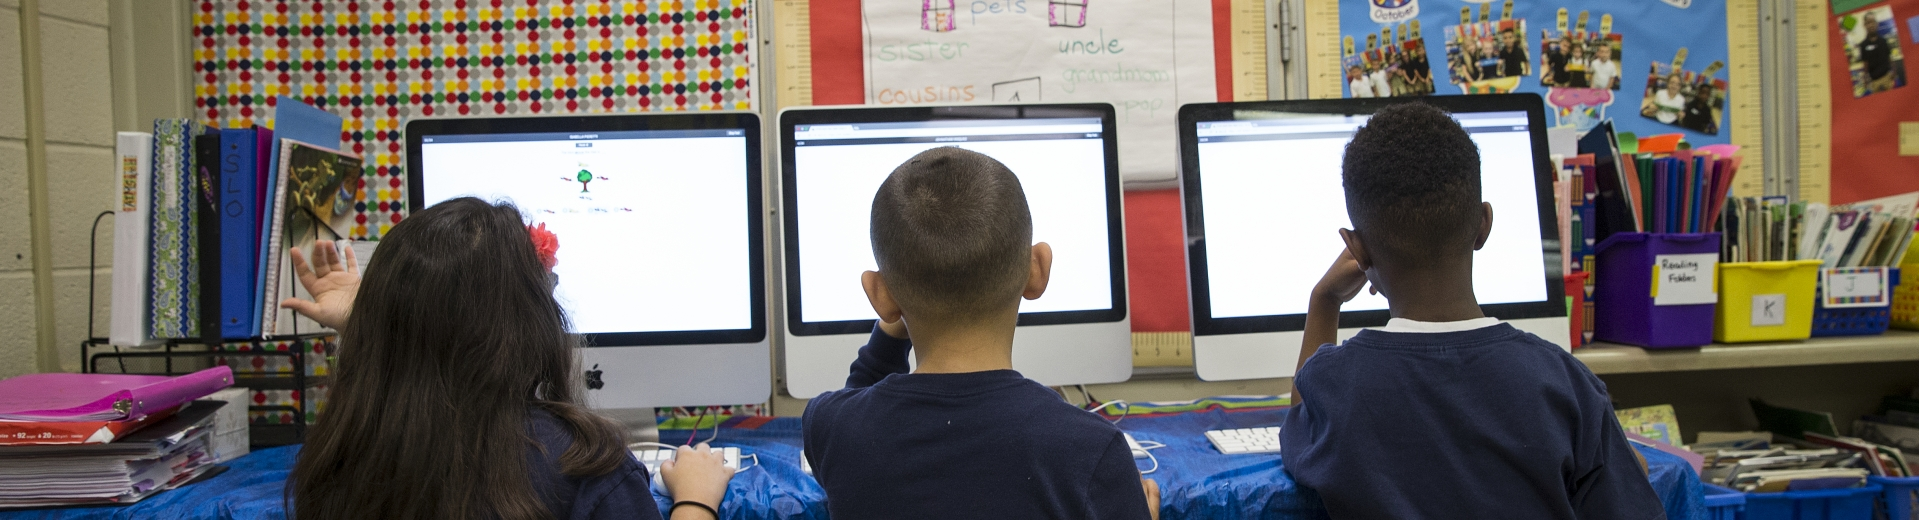 Students in classroom using computers